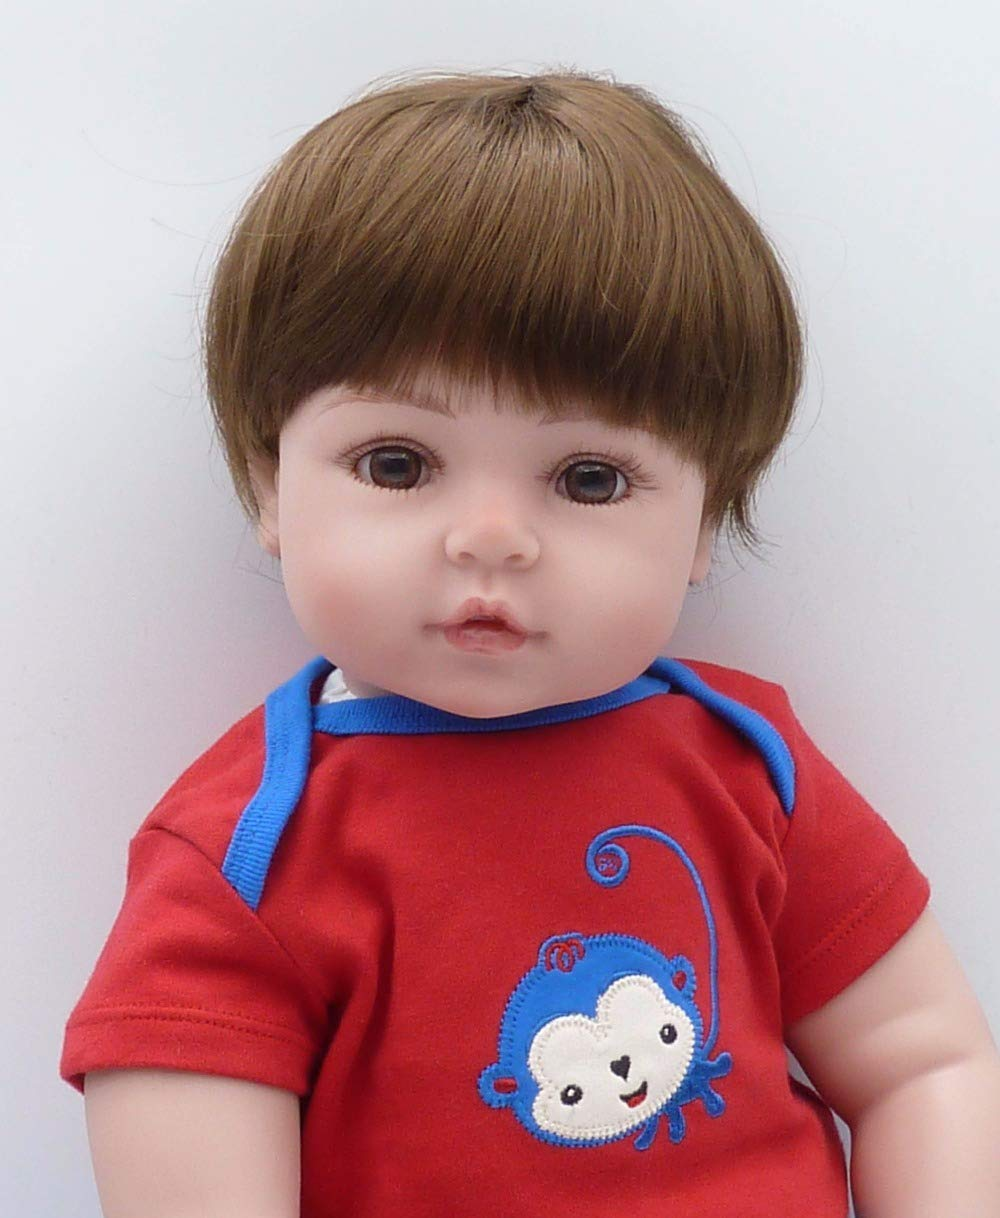 47cm ZIYIUI Reborn Baby Dolls Thant Look Real Handemade Soft Silicone Vinyl Reborn Toddler Realistic Real Lifelike Newborn Baby Dolls Girl Toy Best Xmas Birthday Gift (47cm)